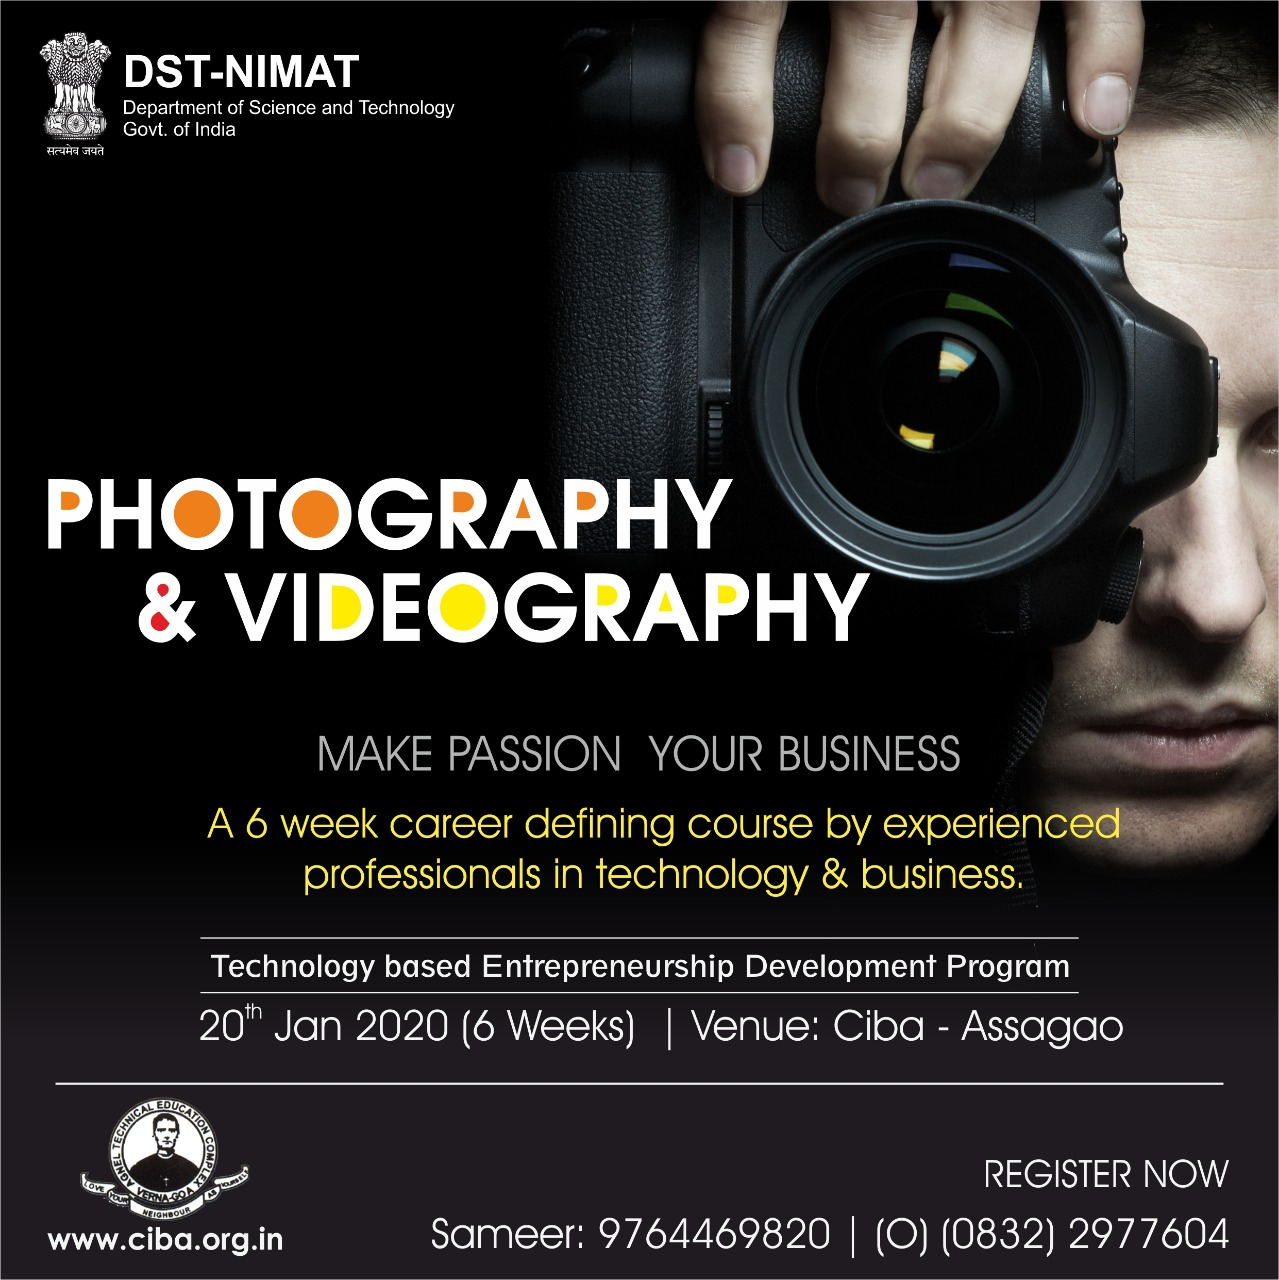 ciba-Technology-Based Entrepreneurship Development Programme in Photography & Videography